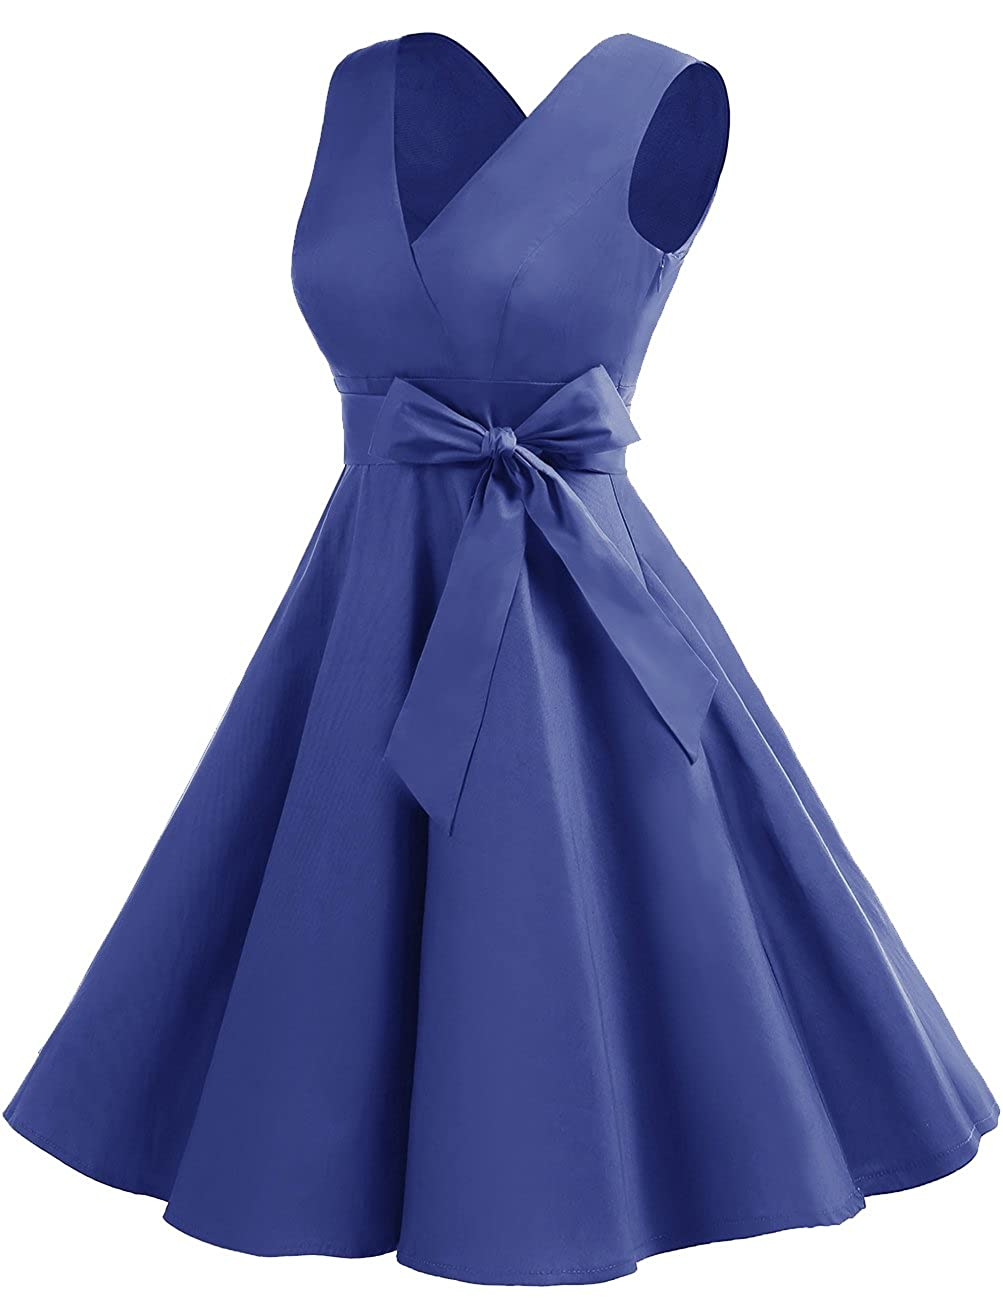 342ef5dde030 DRESSTELLS Vintage 1950s Solid Color V Neck Retro Swing Dress with Bow Tie  at Amazon Women's Clothing store: